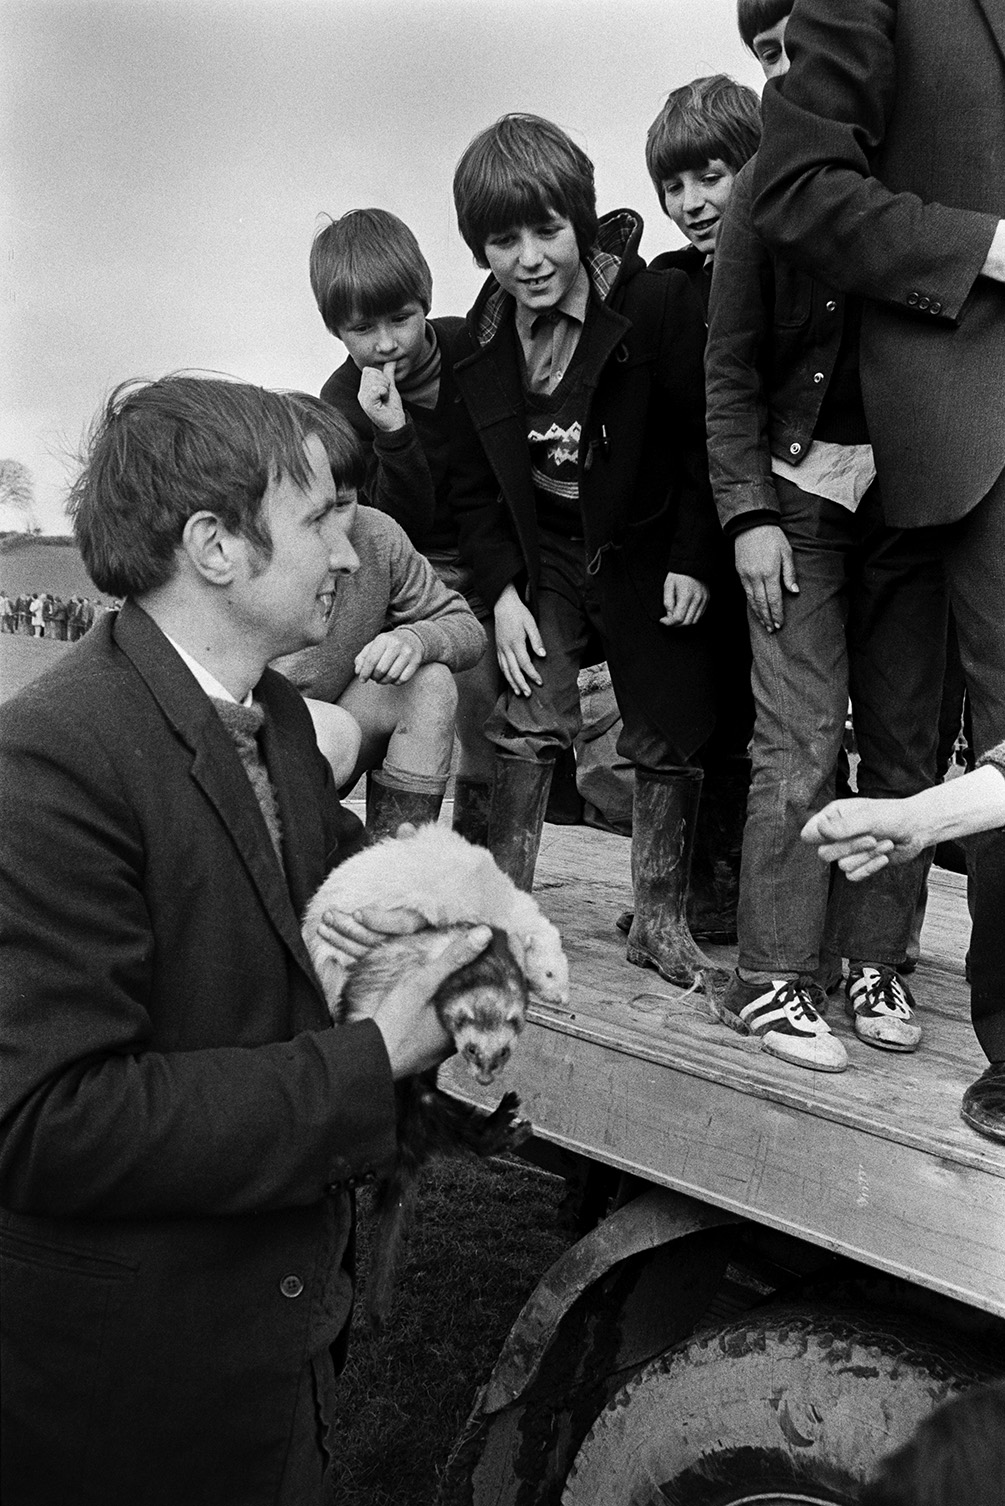 A group of boys stood on a trailer and reaching out to stroke two ferrets which a man is holding, at a'Man Powered Flight' competition in a field at Crowbeare.